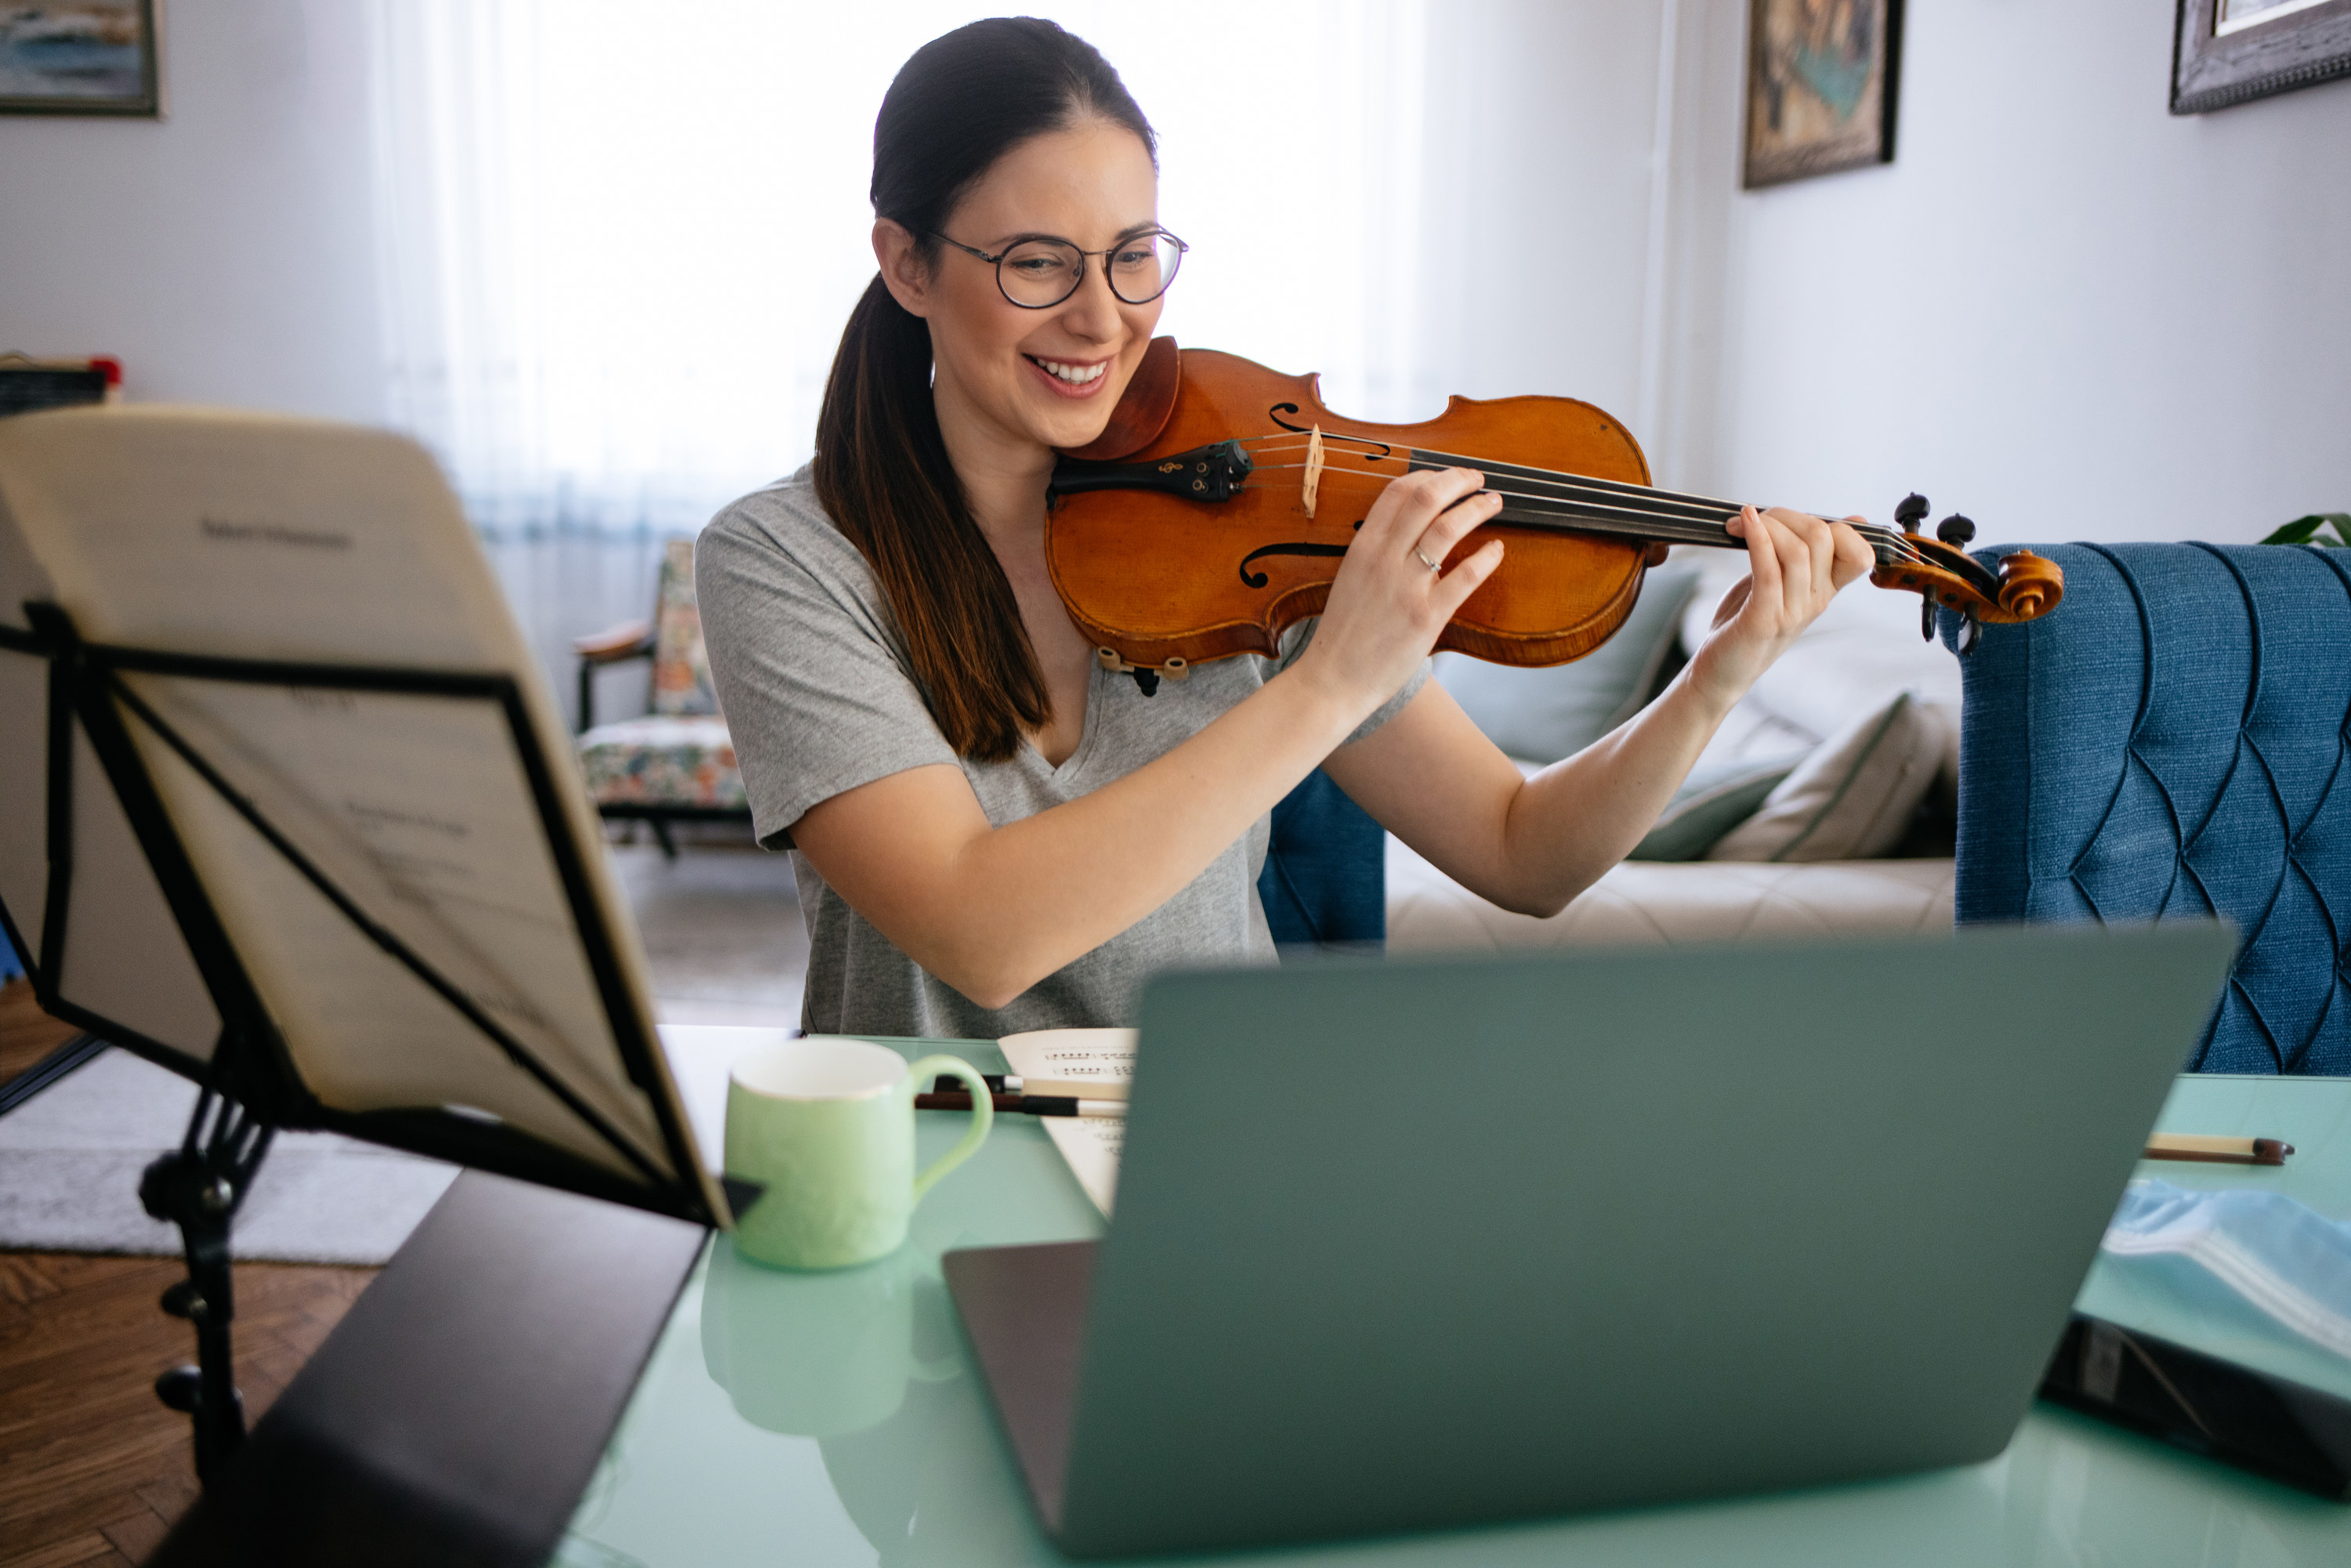 Woman smiles, while playing the violin in front of her laptop